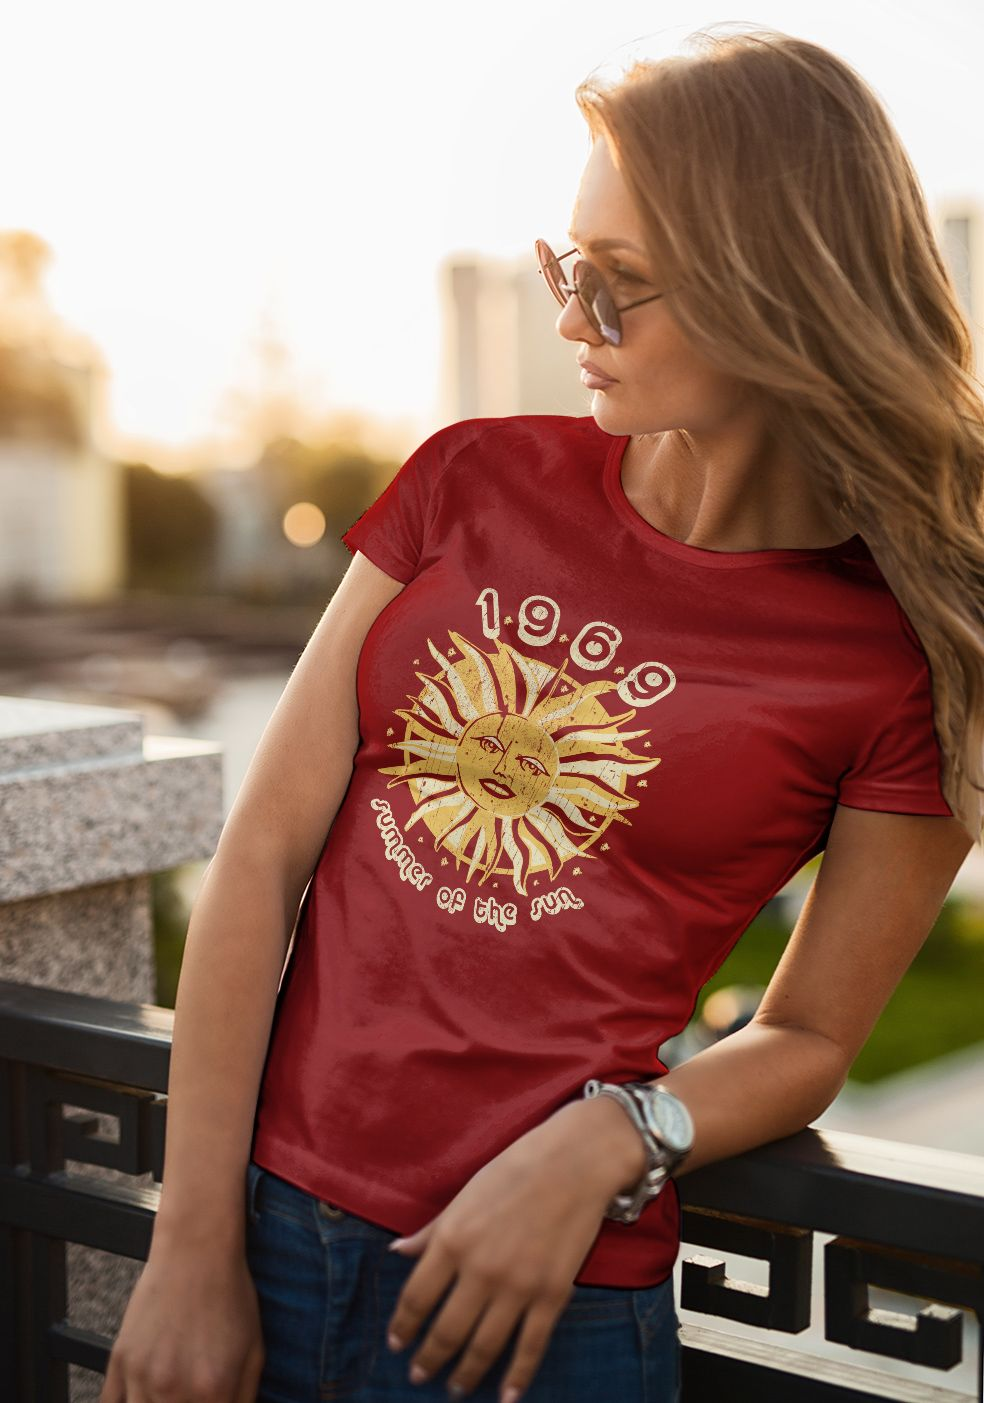 a15d1d7a4325 1969 summer of the sun graphic T Shirt Graphic Tees is your new tee will be  a great gift for him or her  sun  summer  summer holidays  summercolours ...